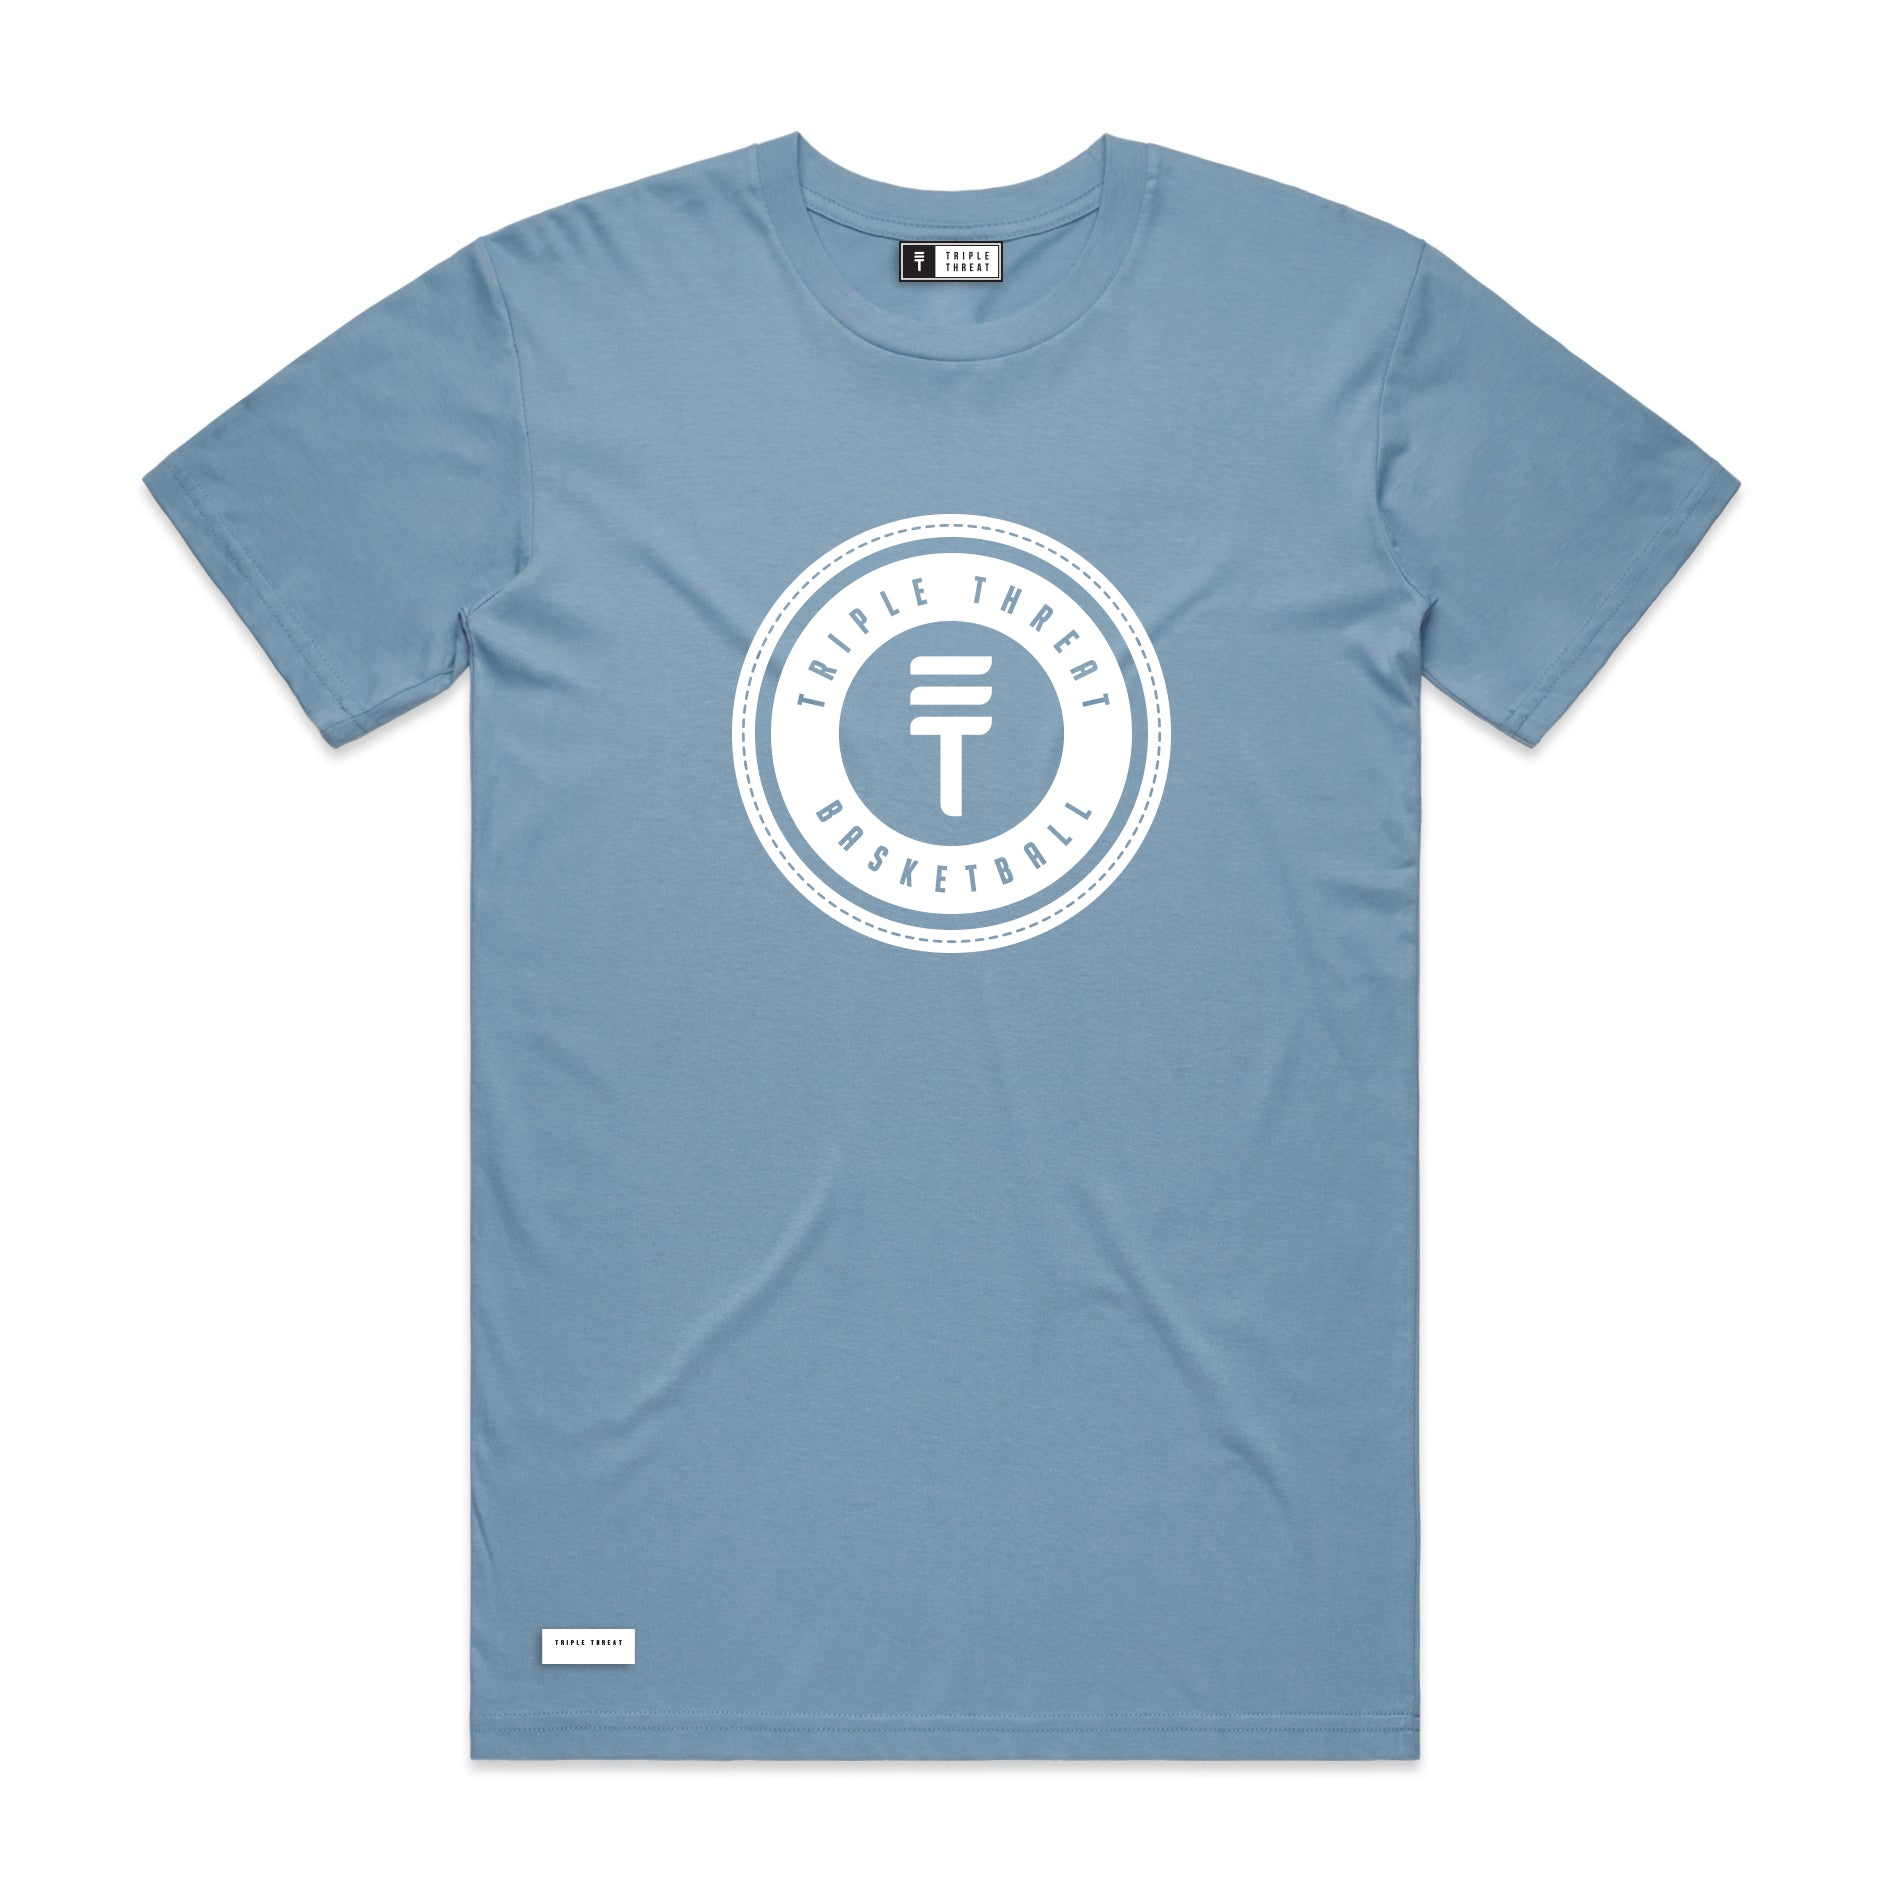 LOGO T-SHIRT - LIGHT BLUE